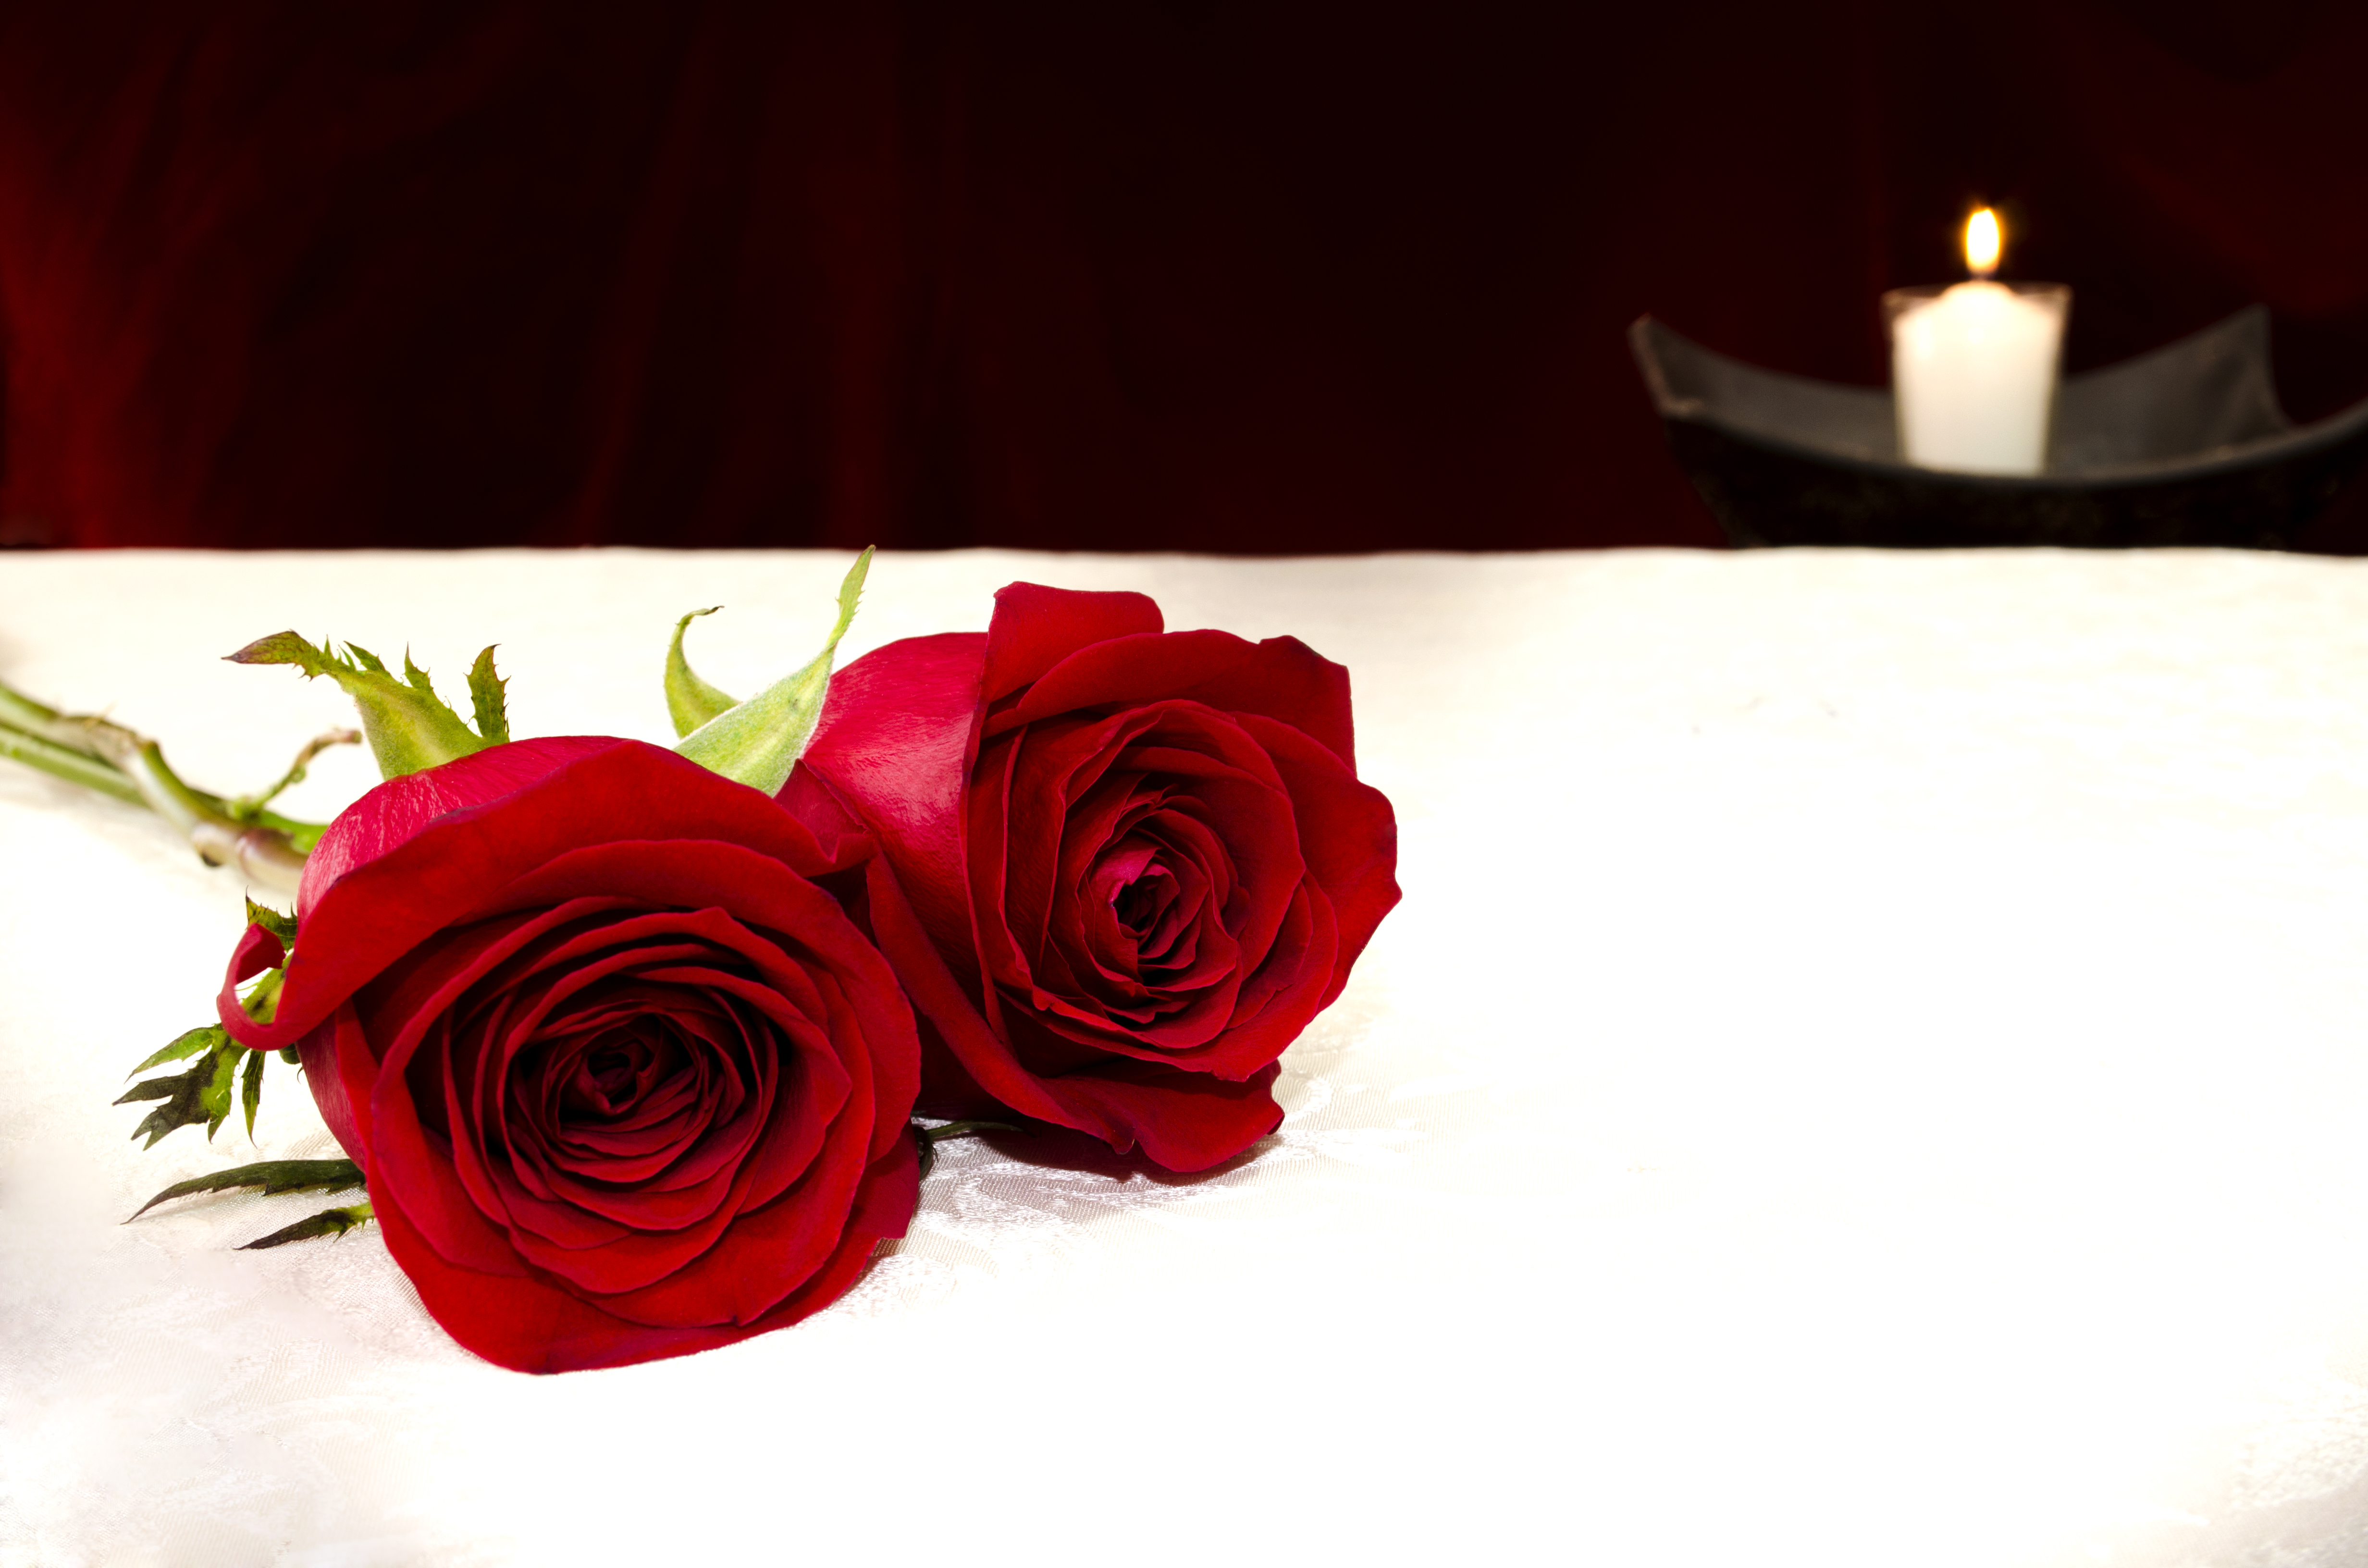 Two red roses and a candle on the background photo